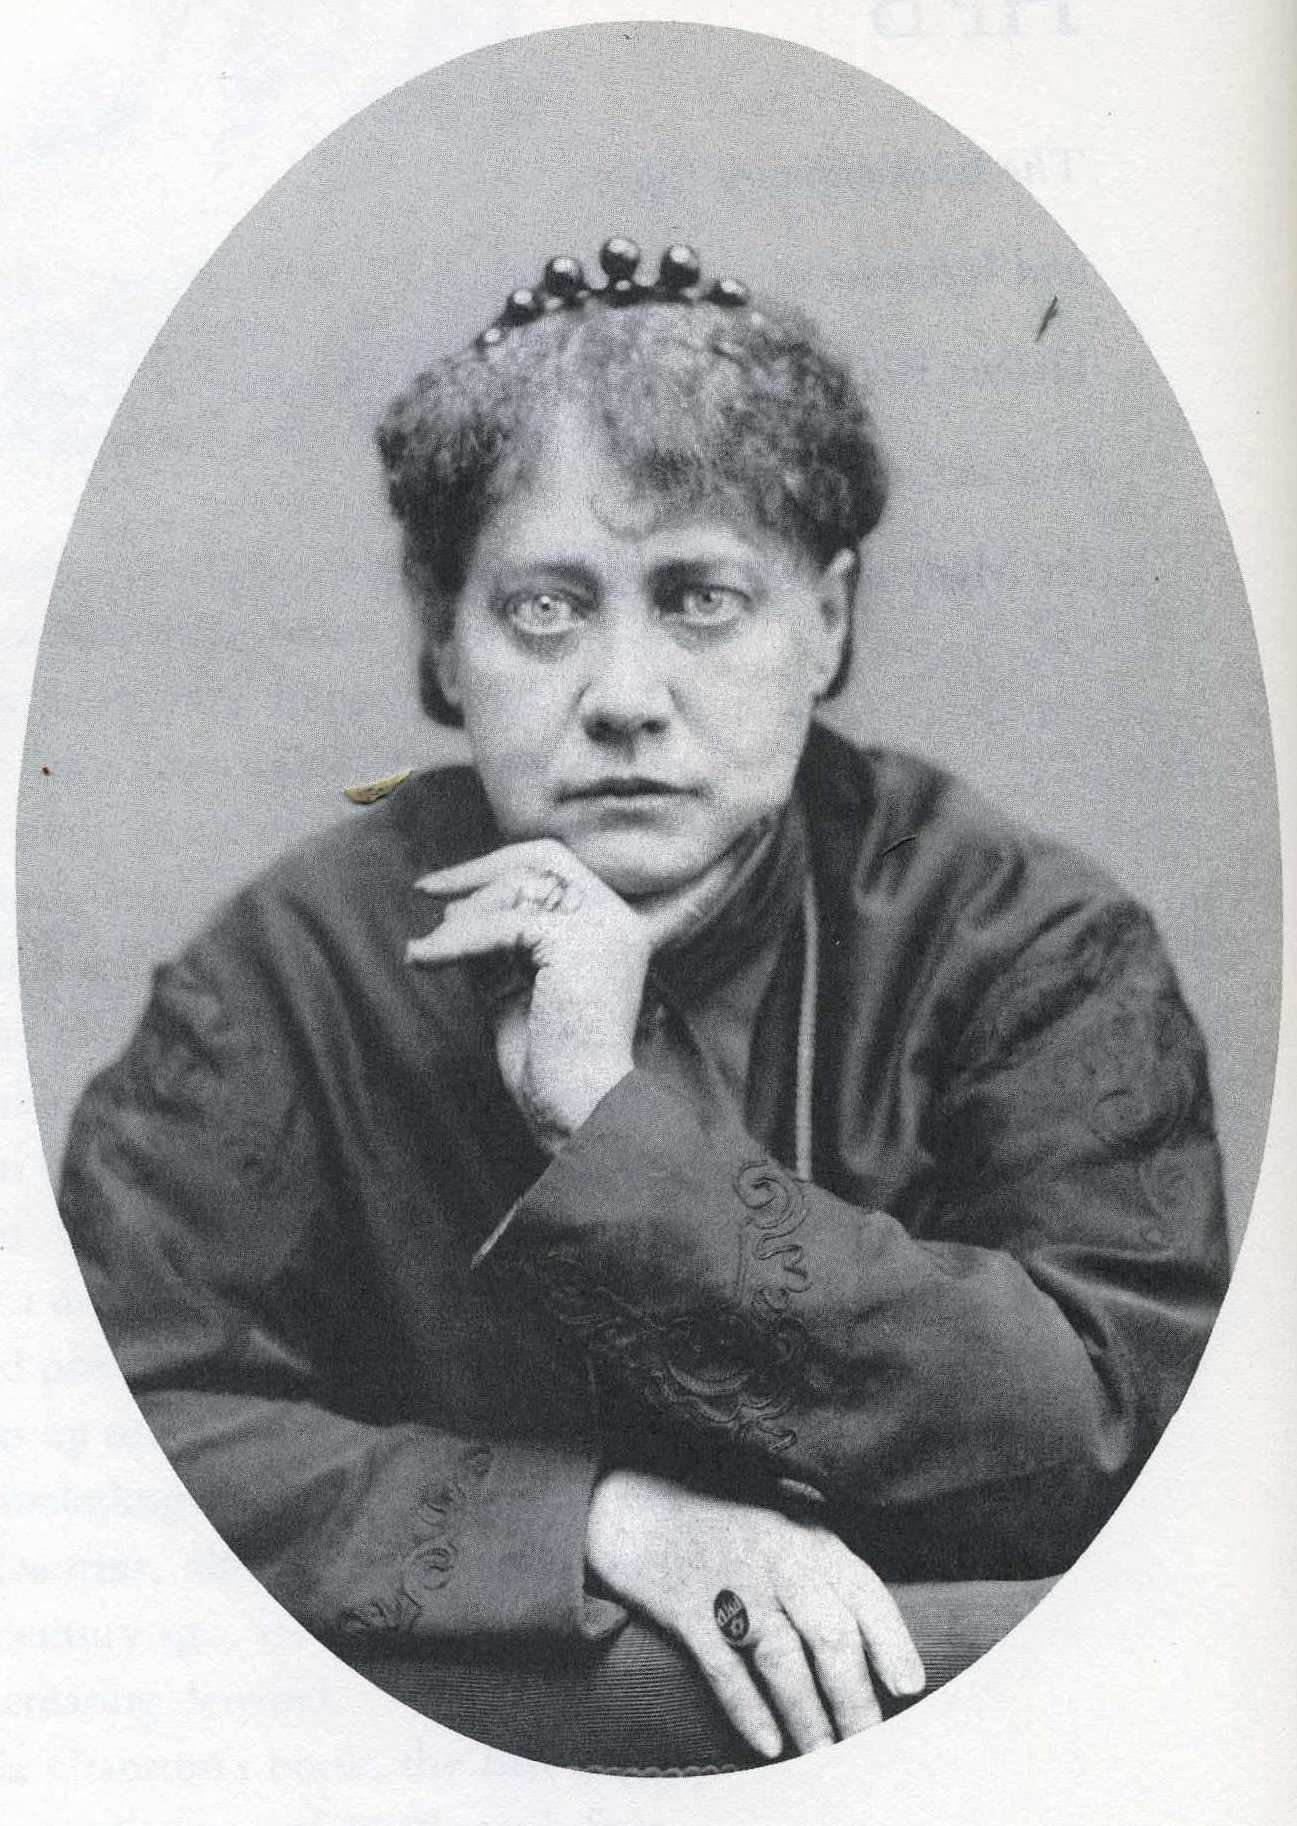 essays by blavatsky madame blavatsky Links to theosophical texts online : 1886, by william quan judge, from 'incidents in the life of madame blavatsky', blavatsky archives online.